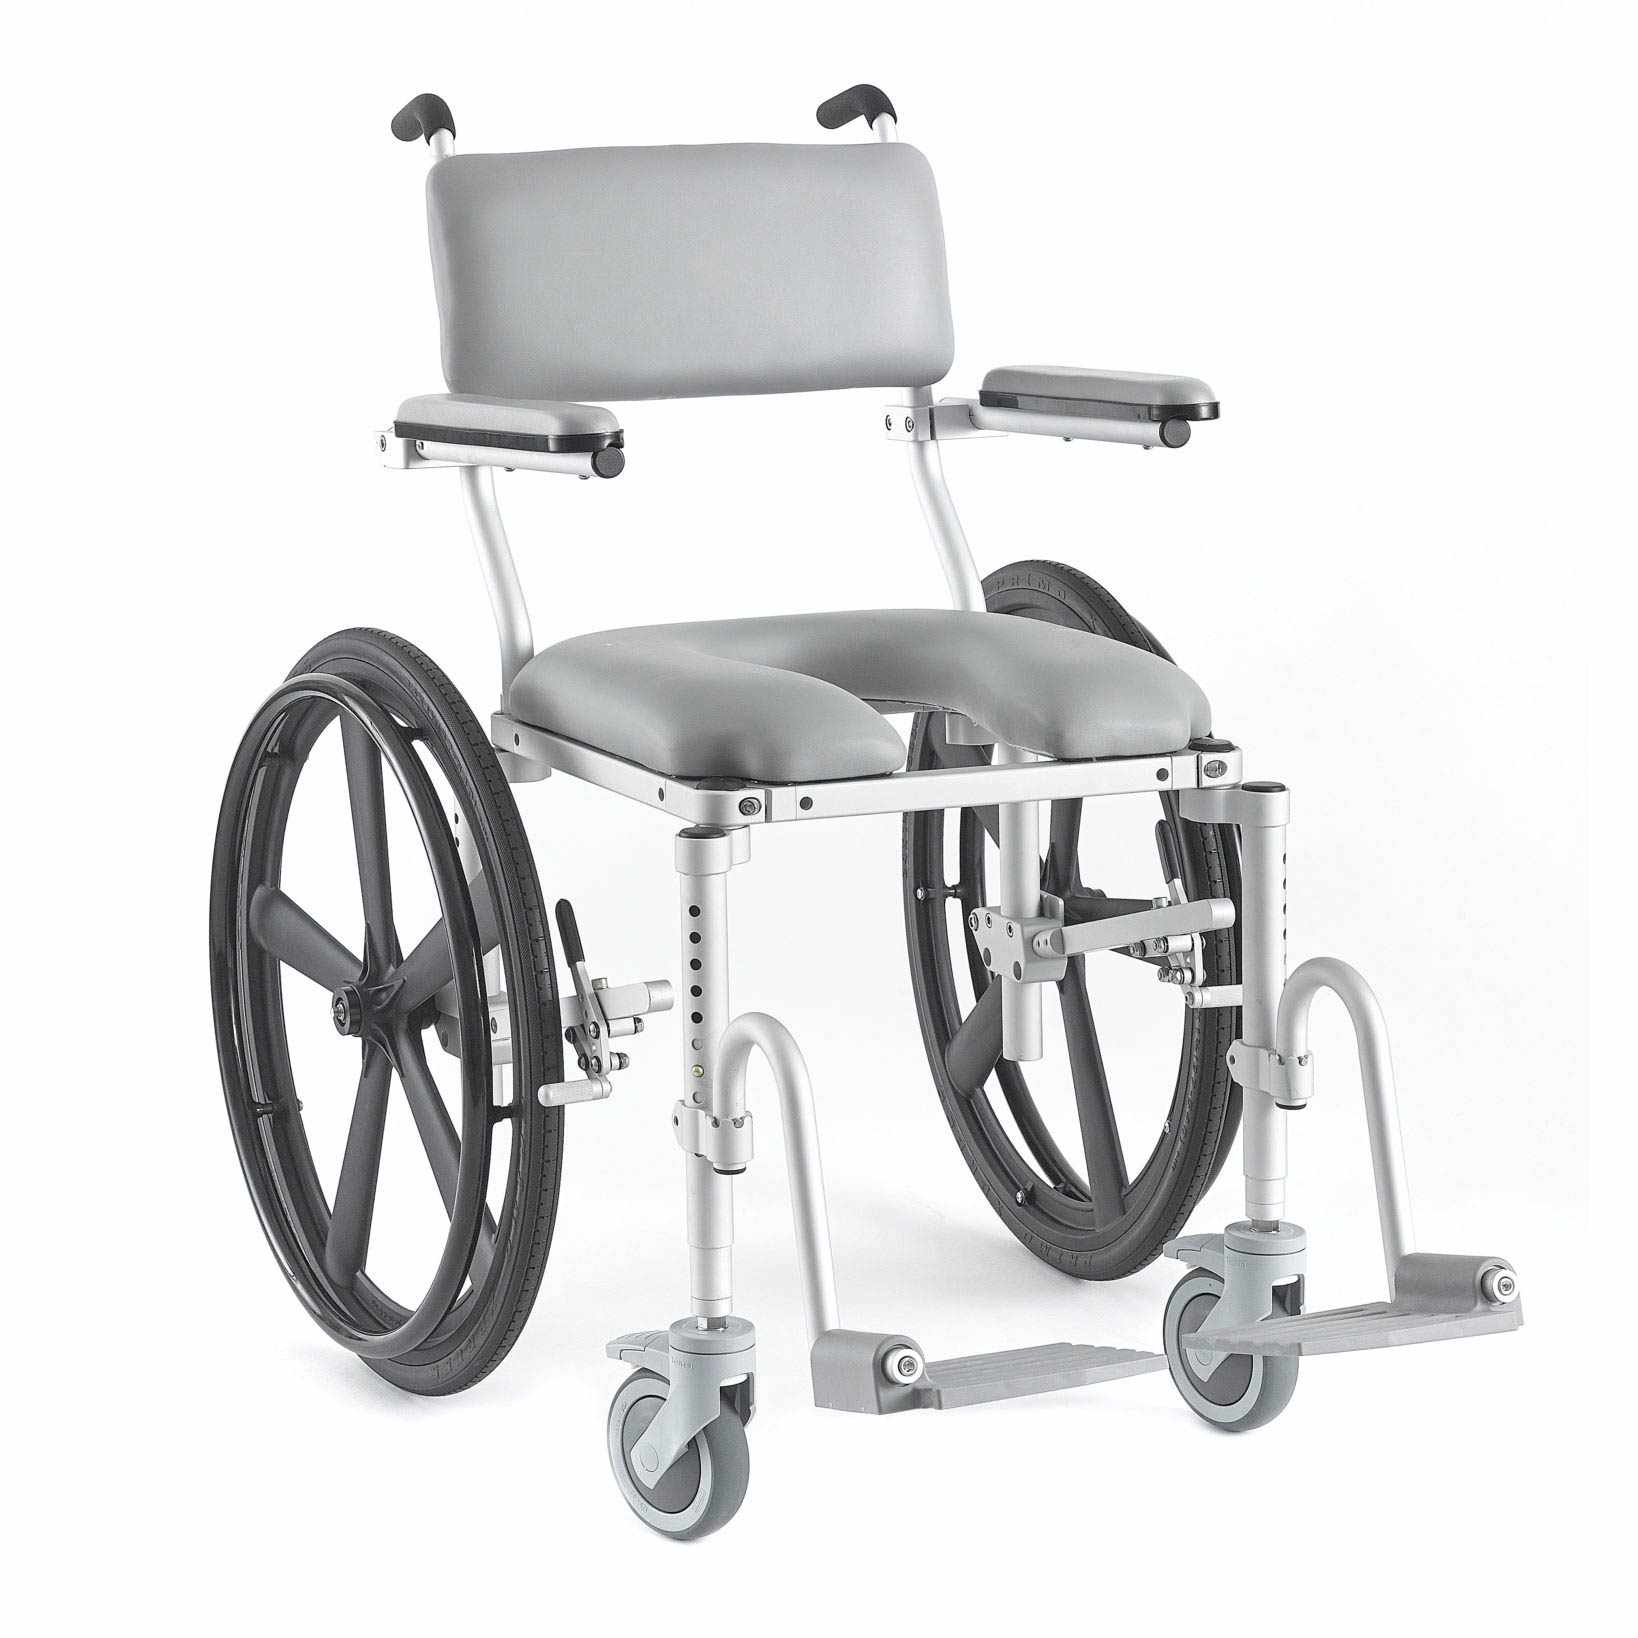 Nuprodx 4024 Roll-In Shower Commode Chair | Medicaleshop